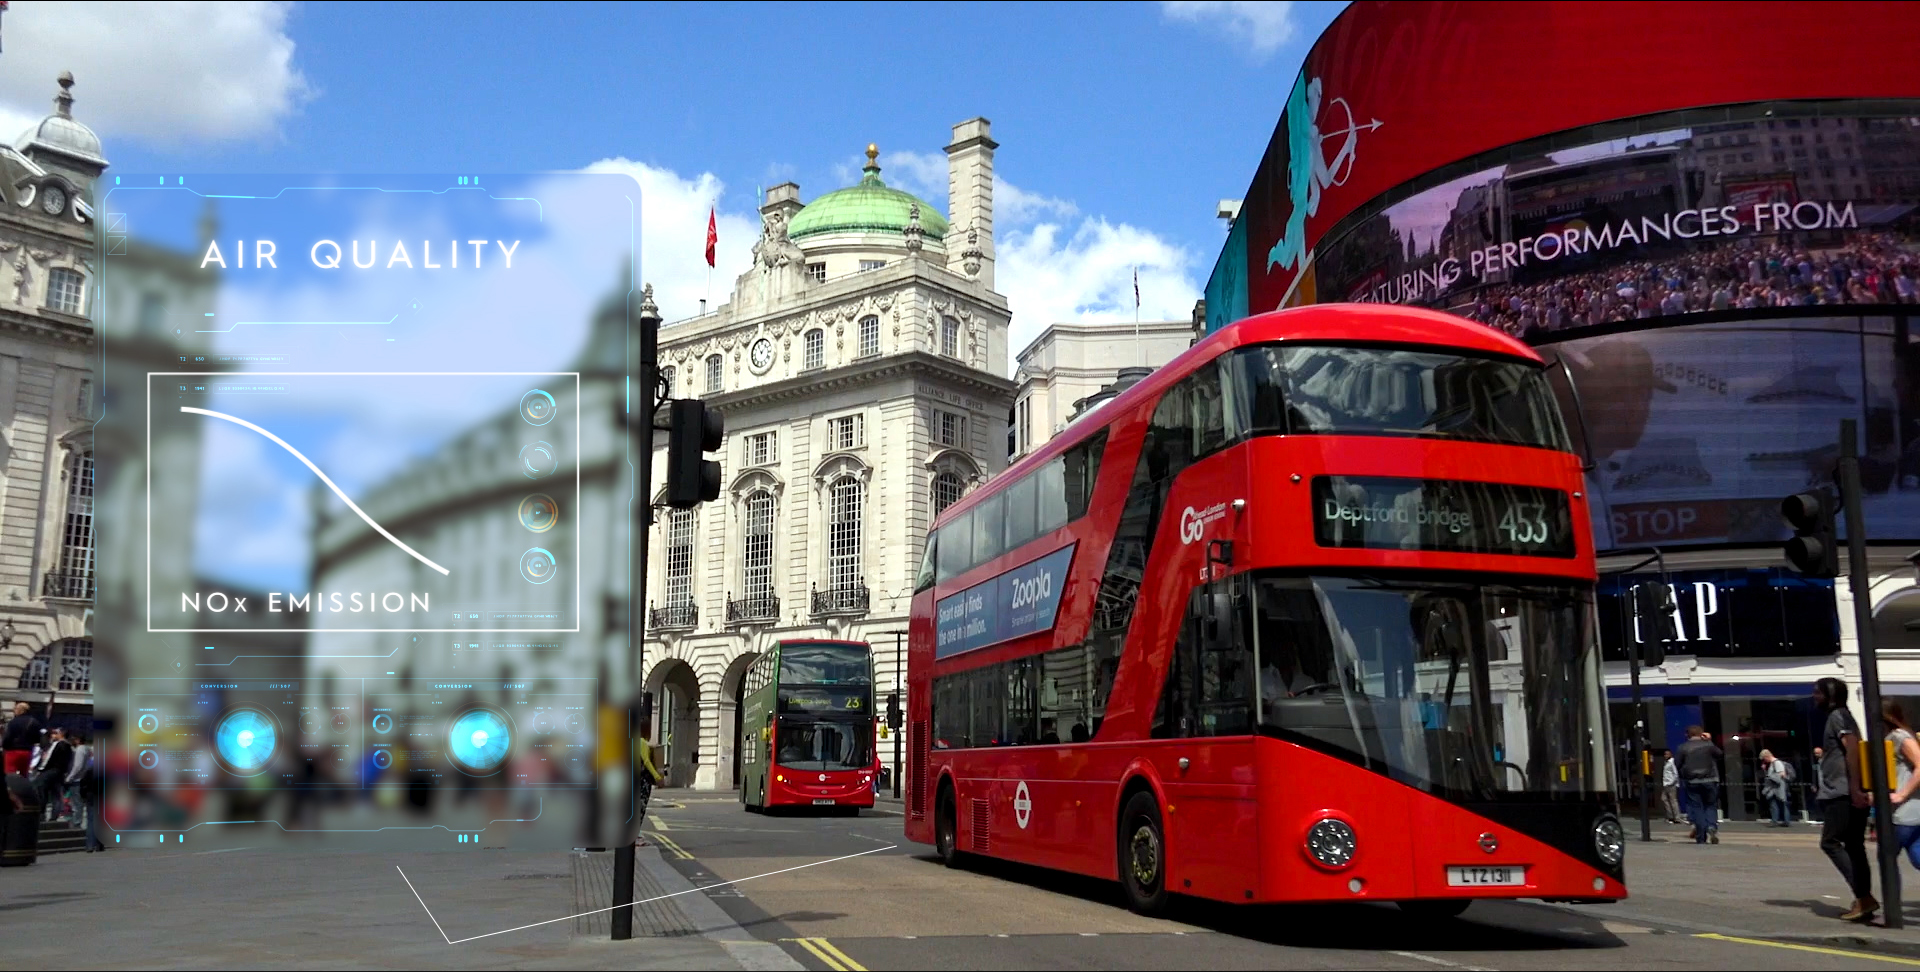 London double decker - ASDS Nox reduction technology